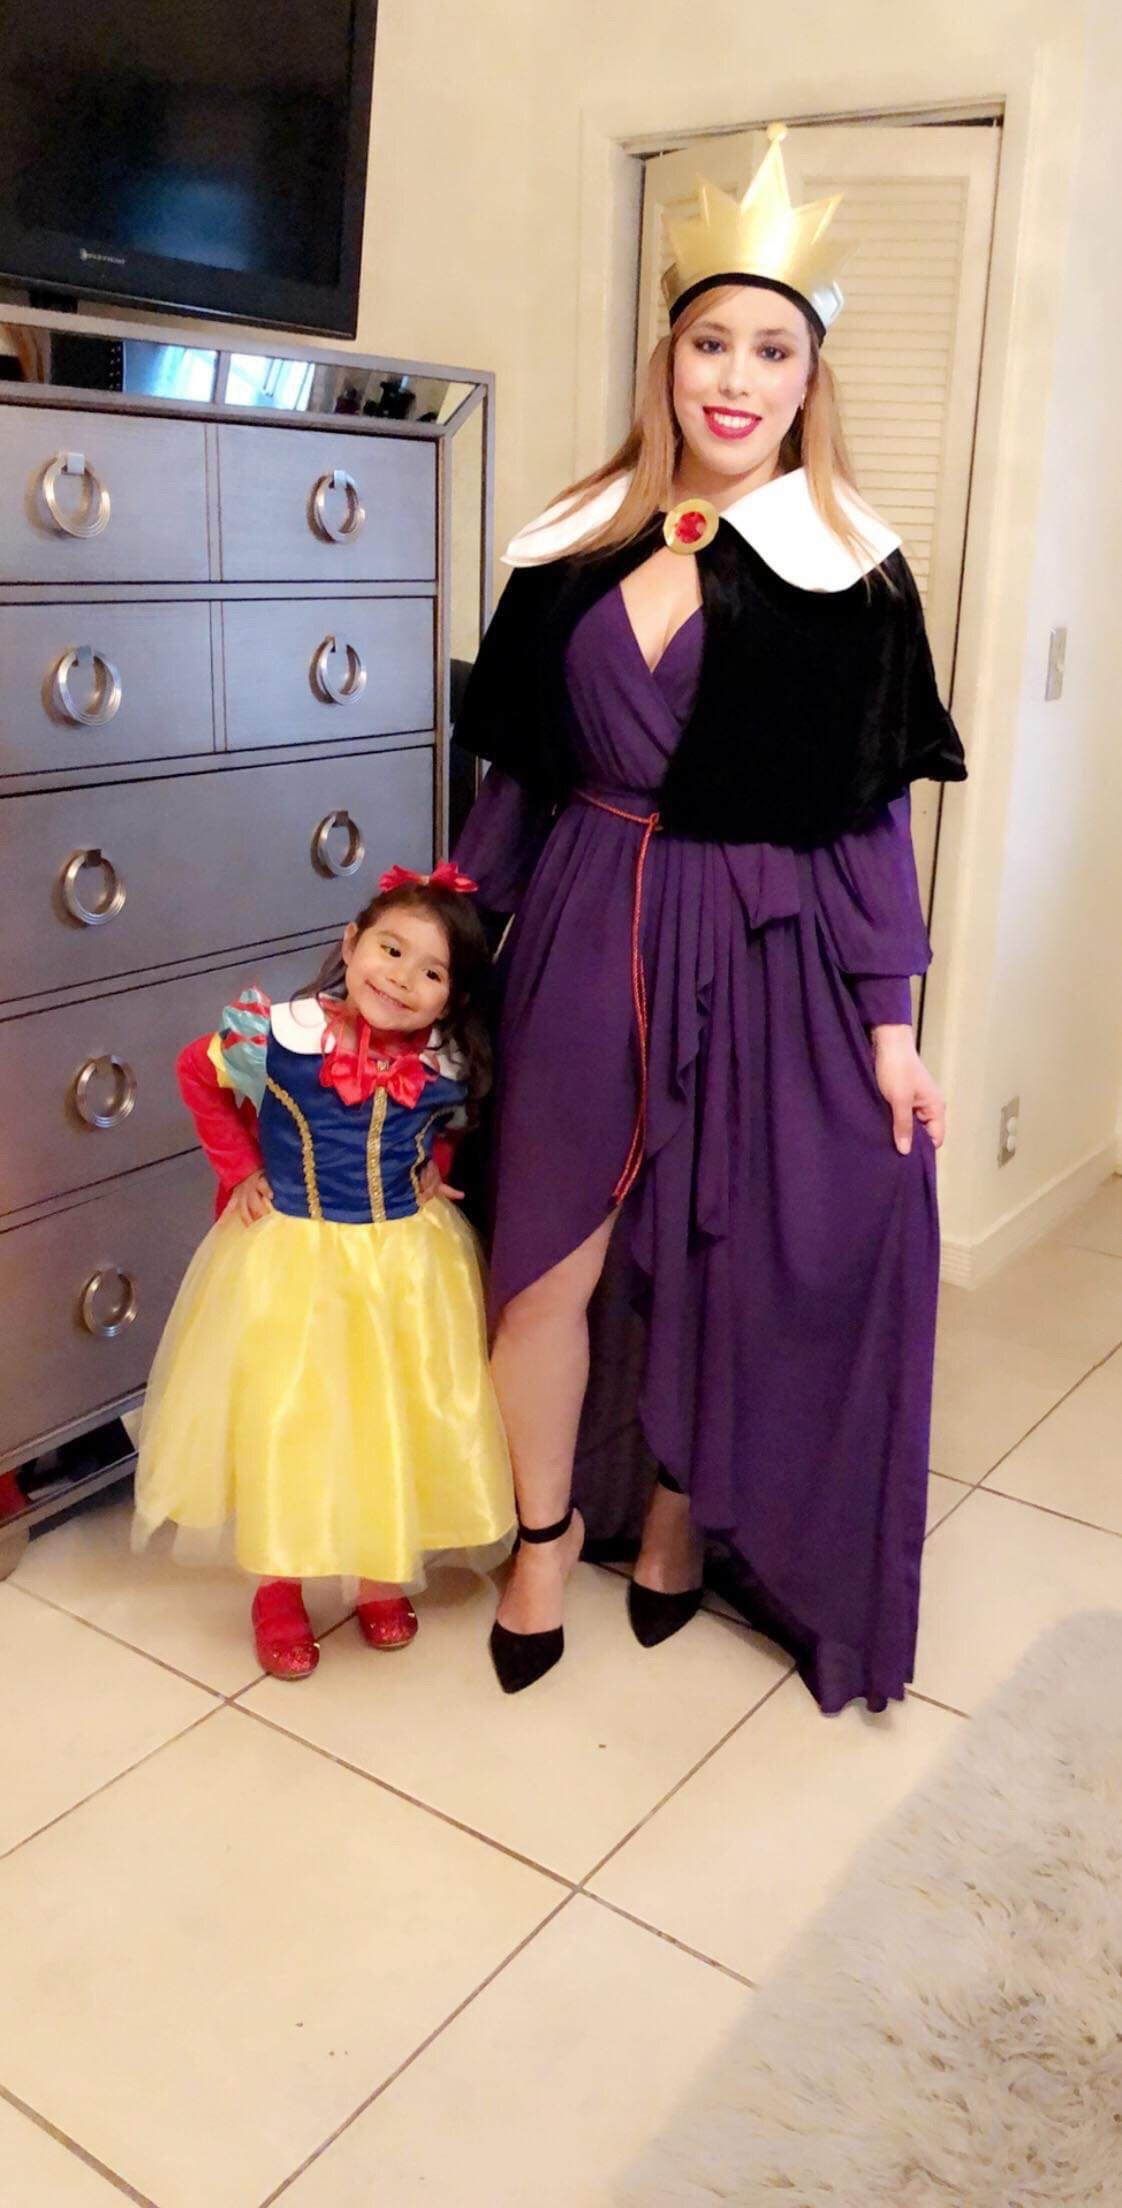 Snow White evil queen mommy and me Halloween costumes idea